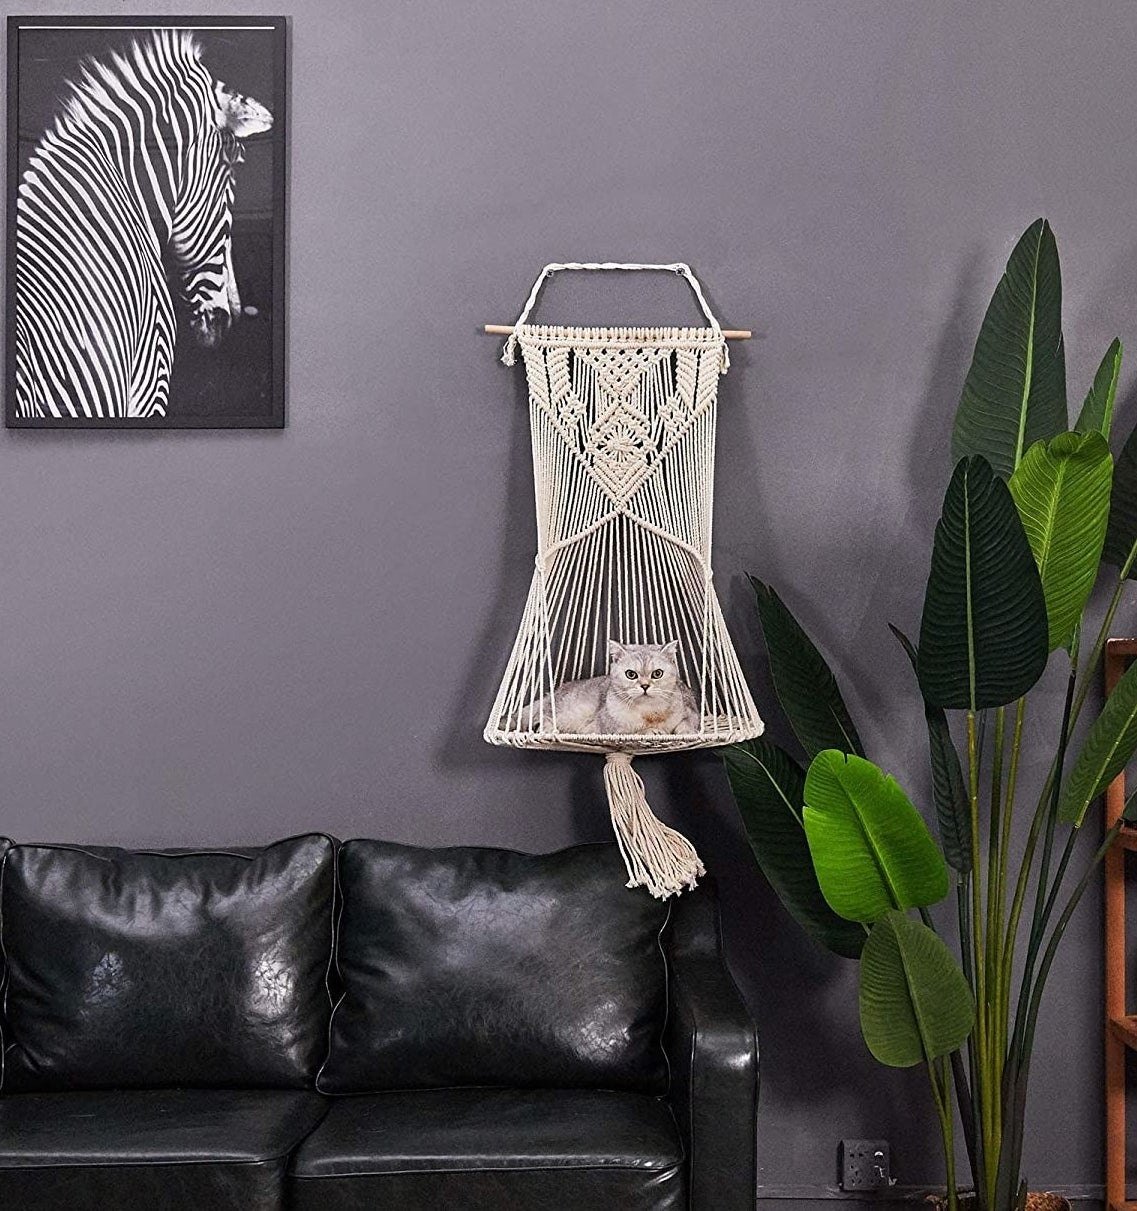 The macrame cat bed, which hangs from a wooden wall mount, ending in a flat woven surface for the cat to lay on